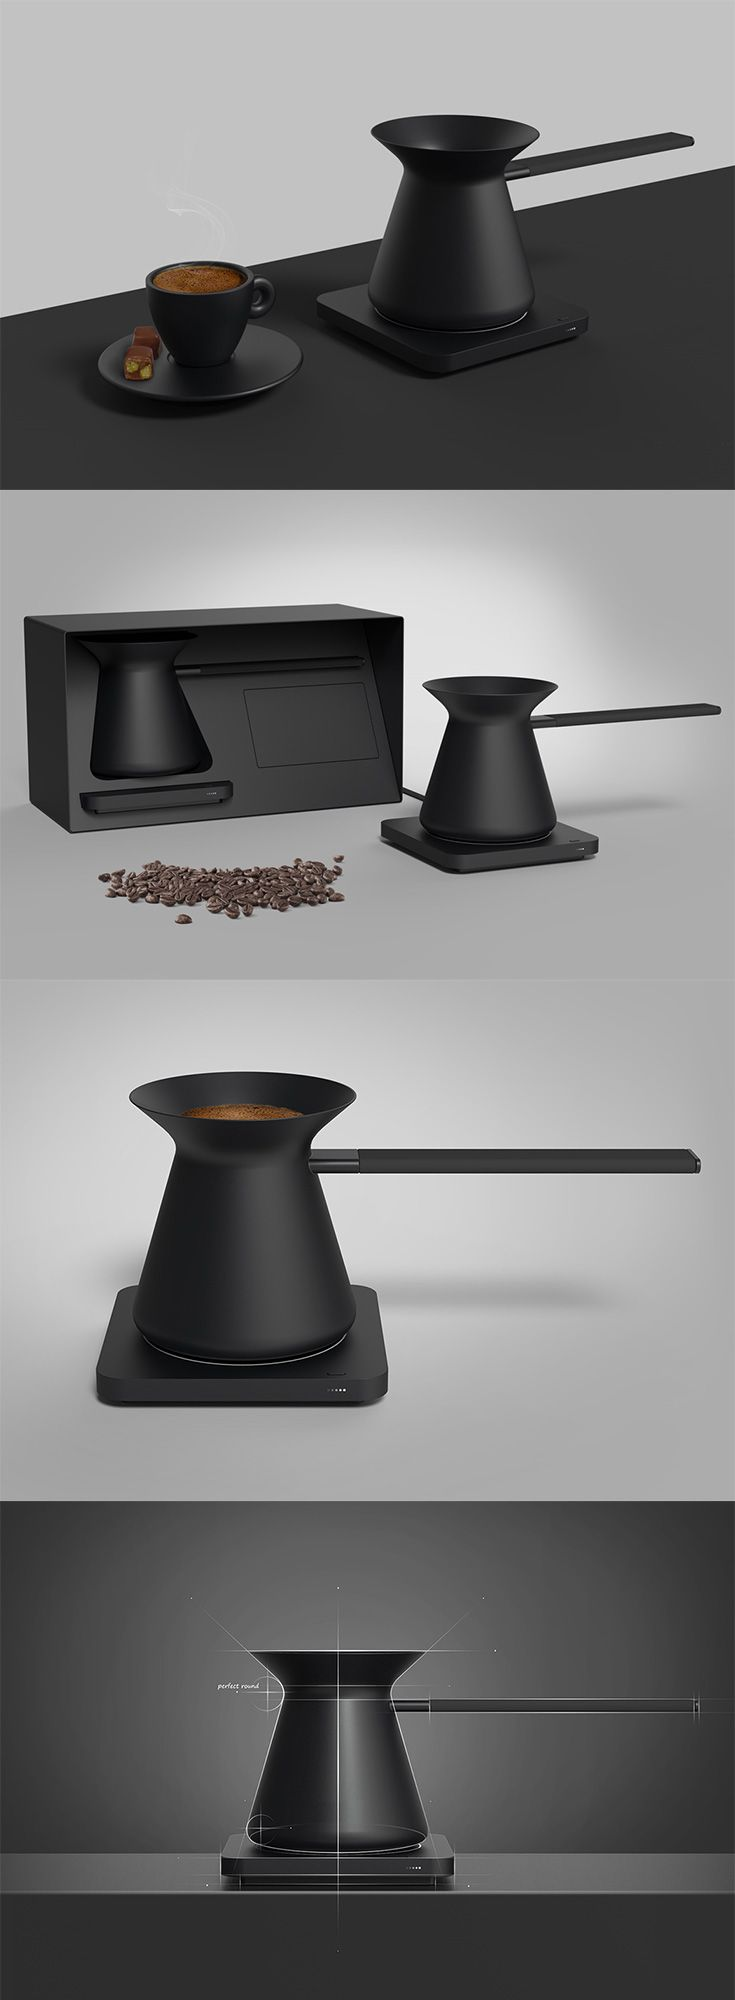 Sedat Ozer's 'Kaffa' combines trend and tradition in a beautiful, minimalist take on the Turkish coffee pot, modeled after the conical shape of the time-tested  original, the design allows users to enjoy the Turkish method of coffee brewing from anywhere, without the need for fire... READ MORE at Yanko Design !